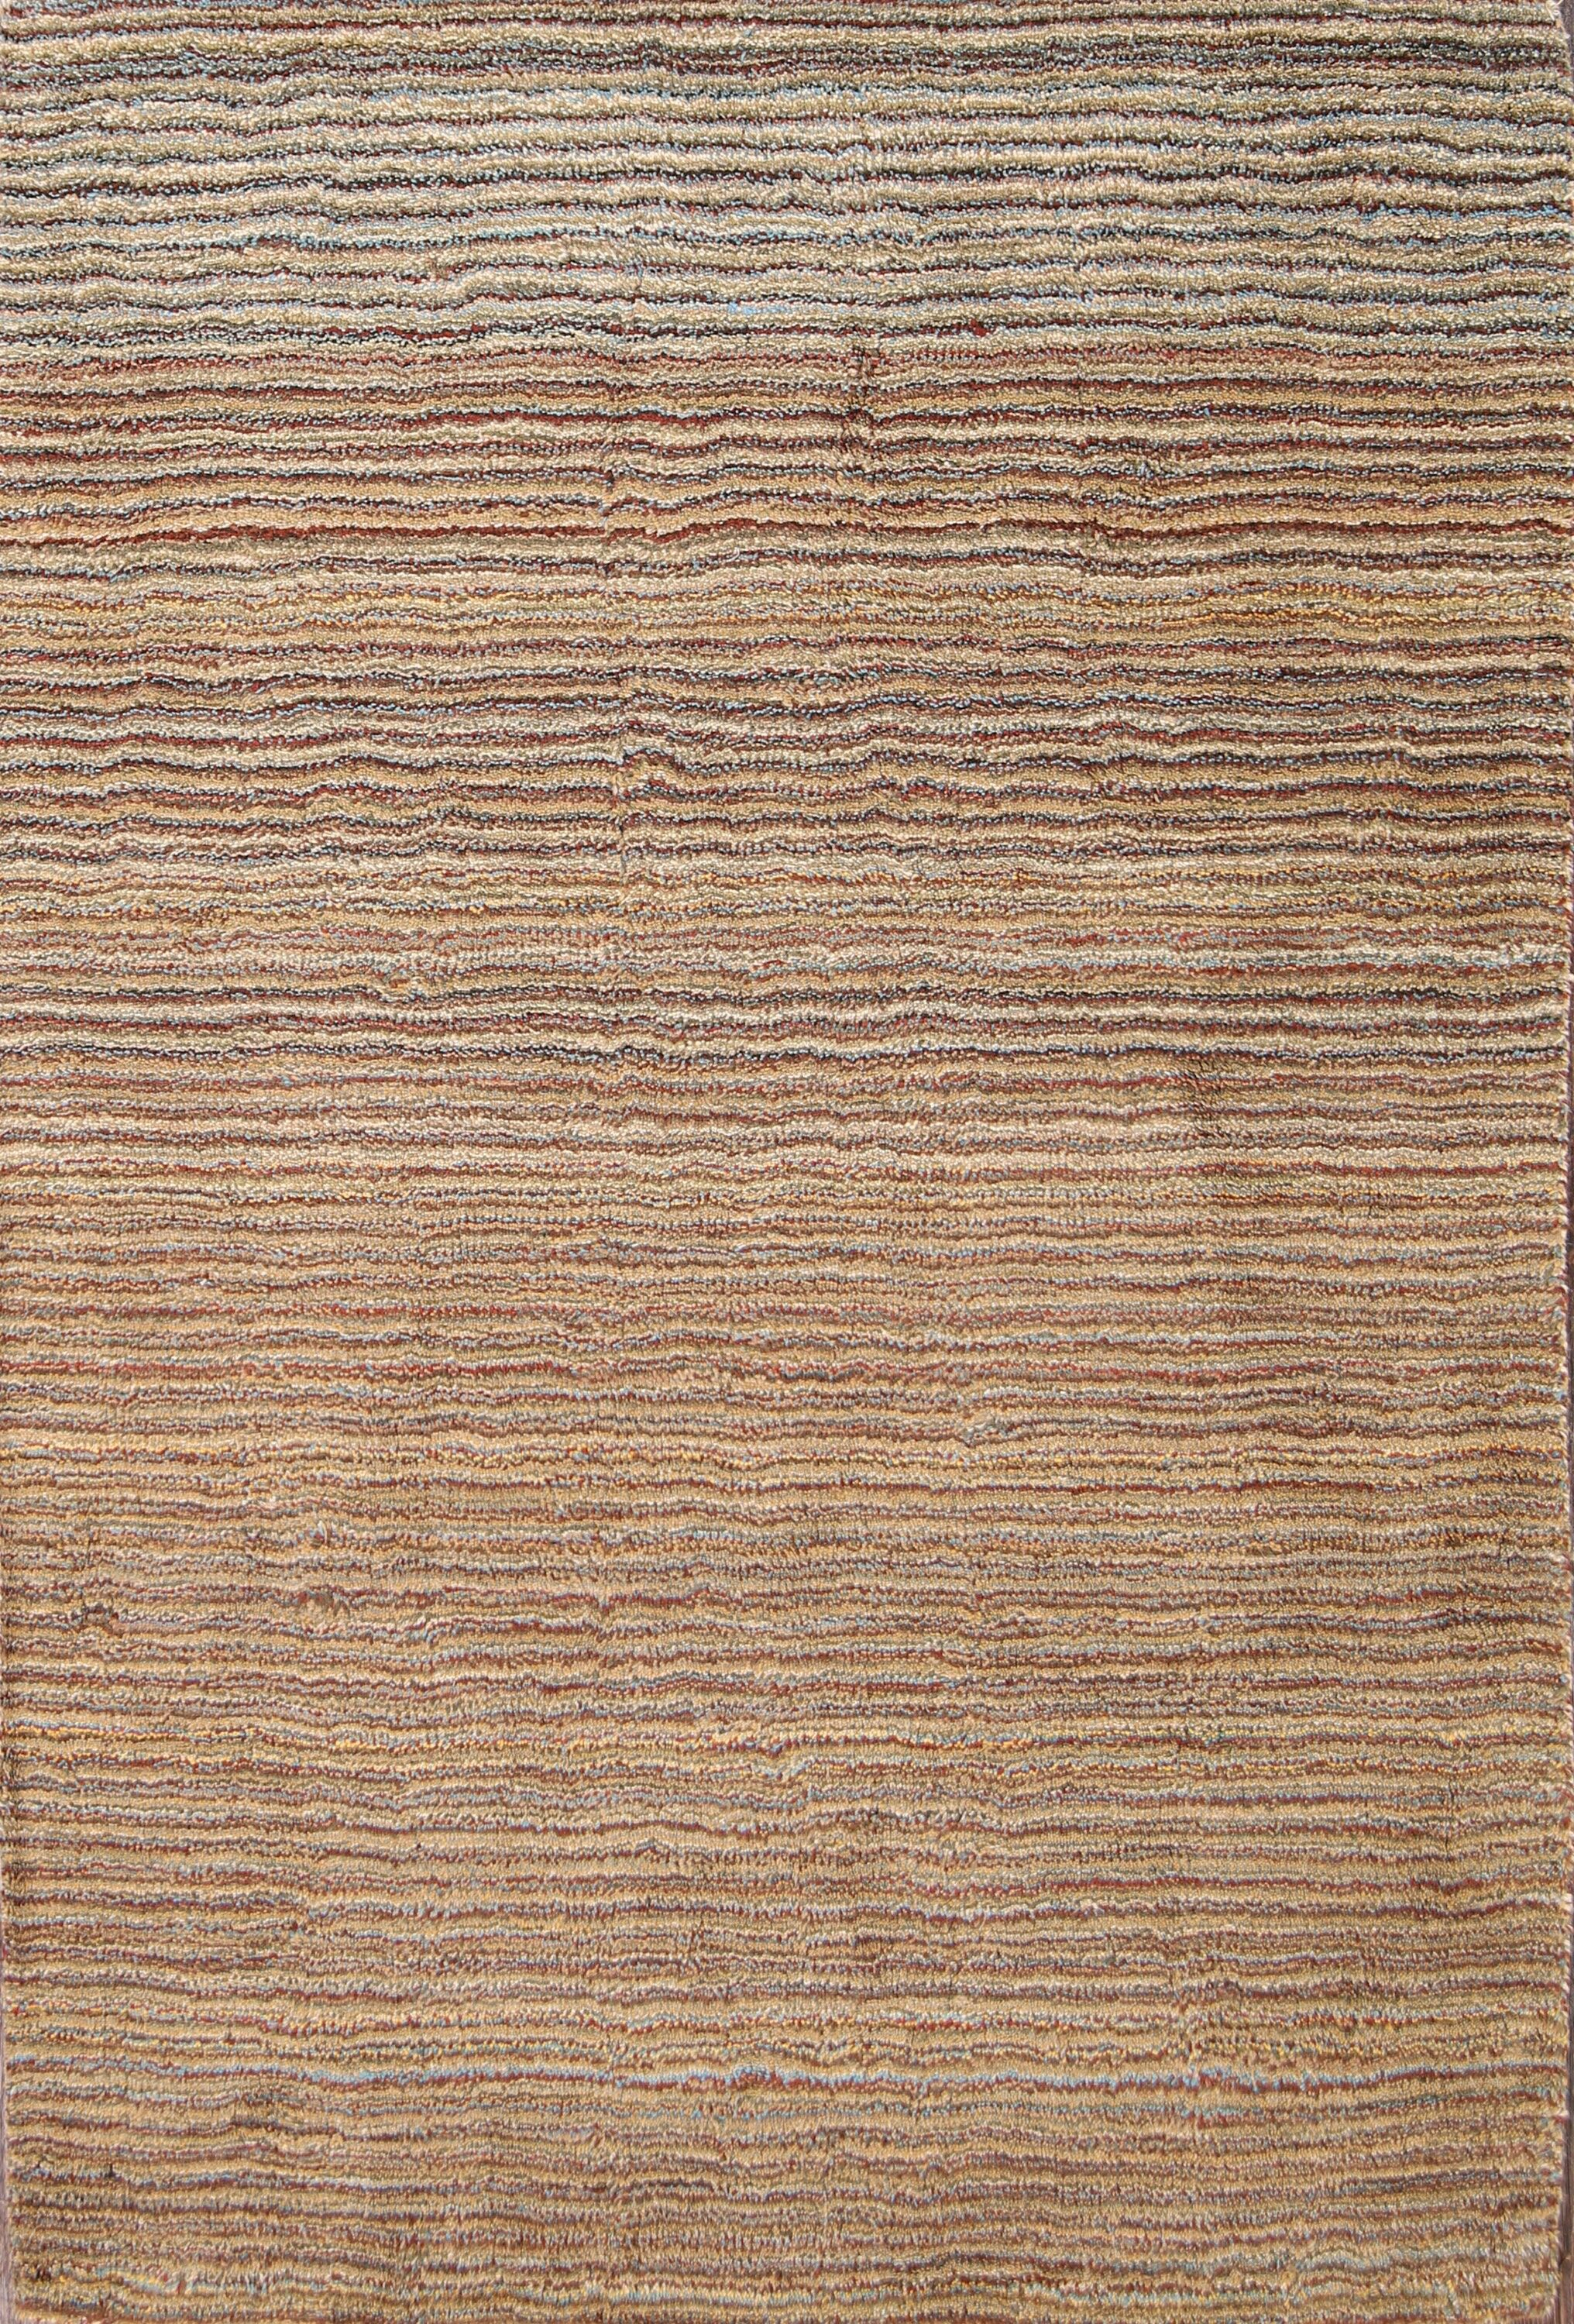 Seidman Oriental Traditional Indian Hand-Tufted Wool Red/Burgundy Area Rug